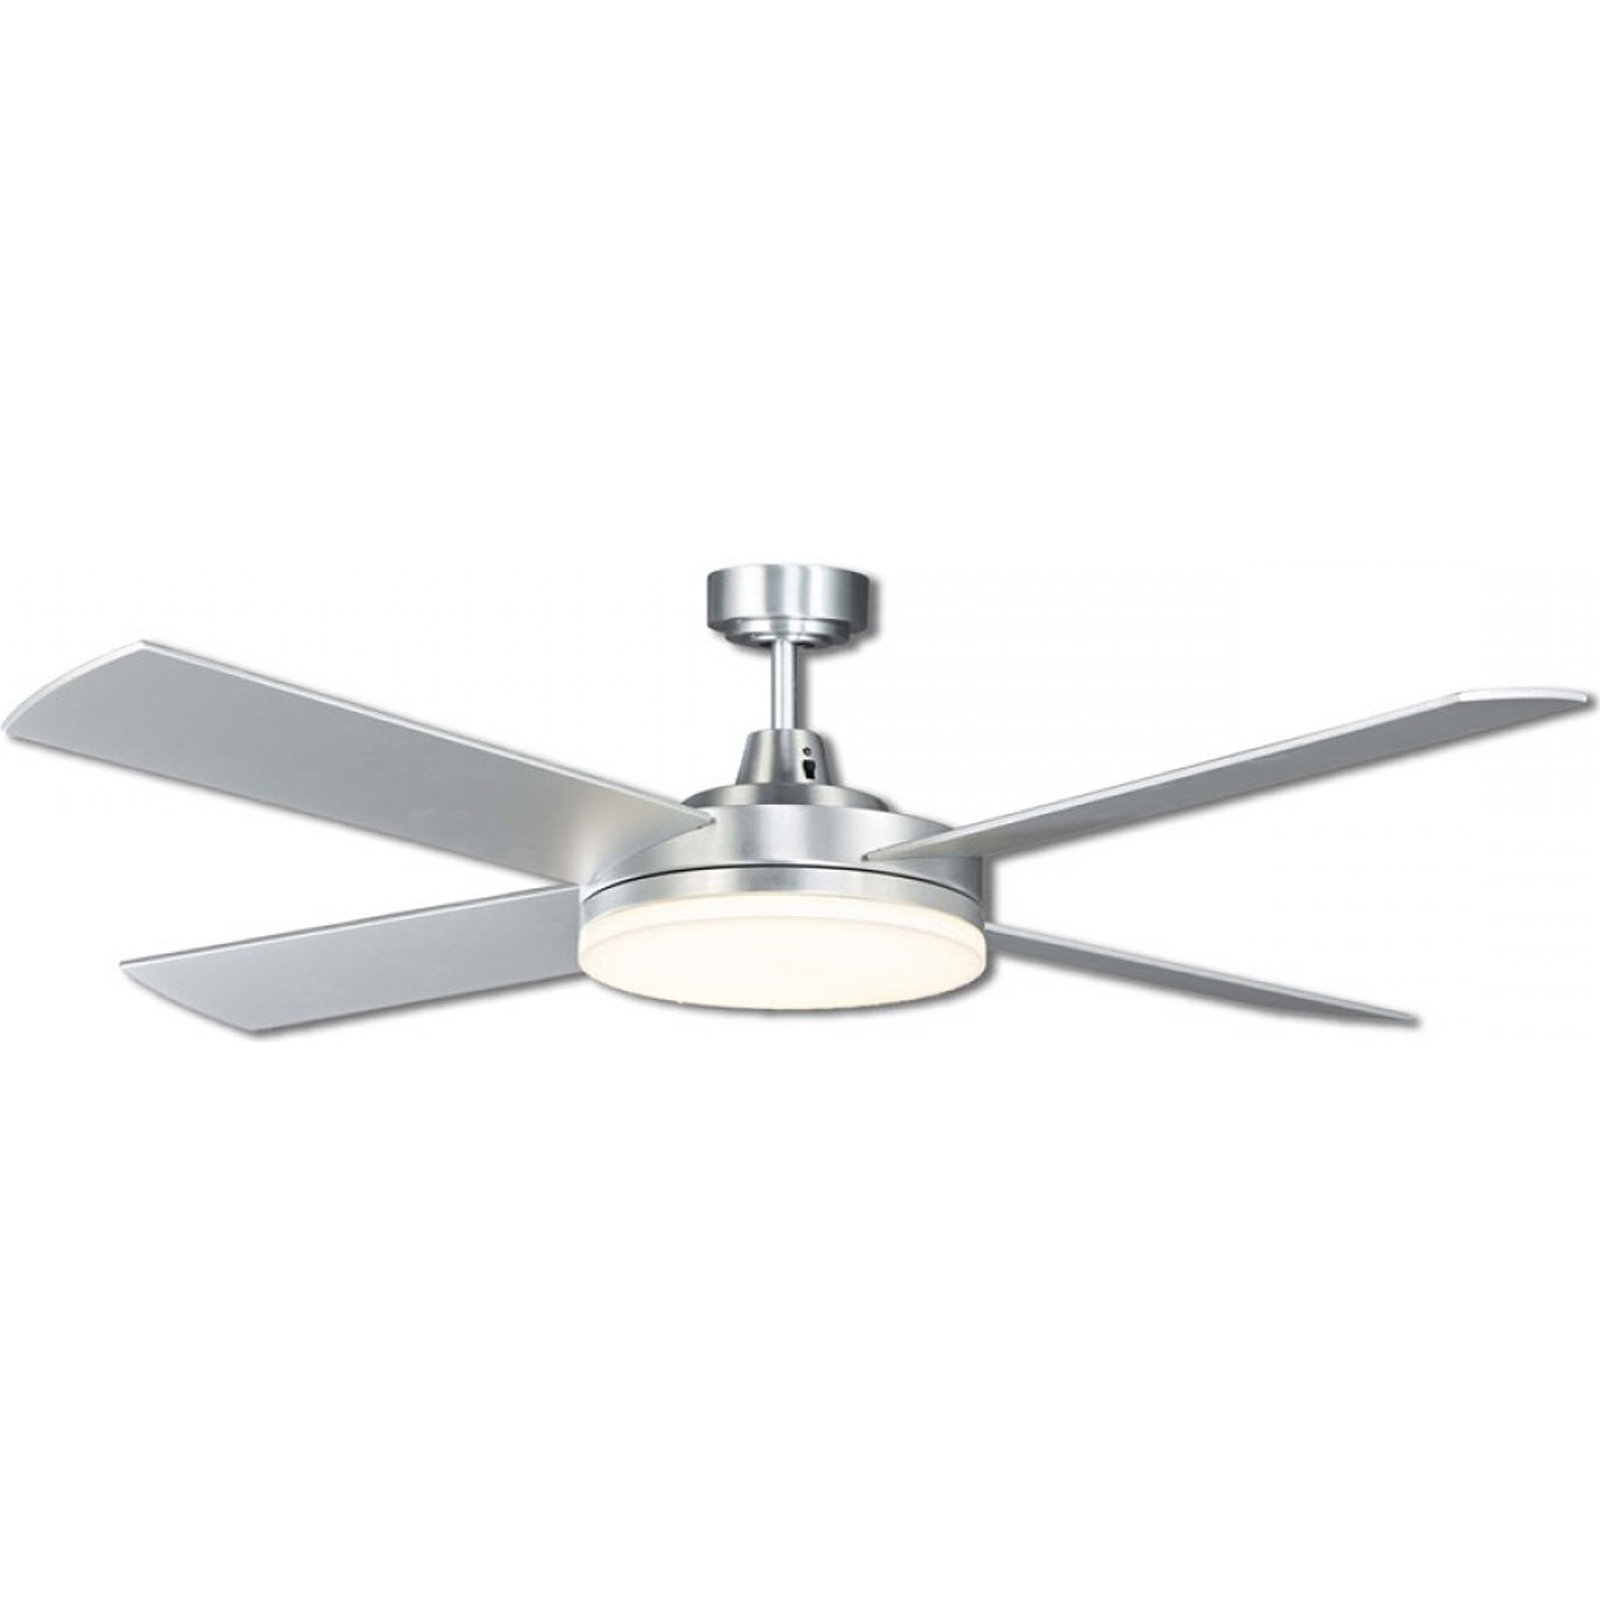 Outdoor Ceiling Fans With Led Lights Within Best And Newest Outdoor Ceiling Fans With Led Ligh On Hunter Ceiling Fans With Led (View 15 of 20)